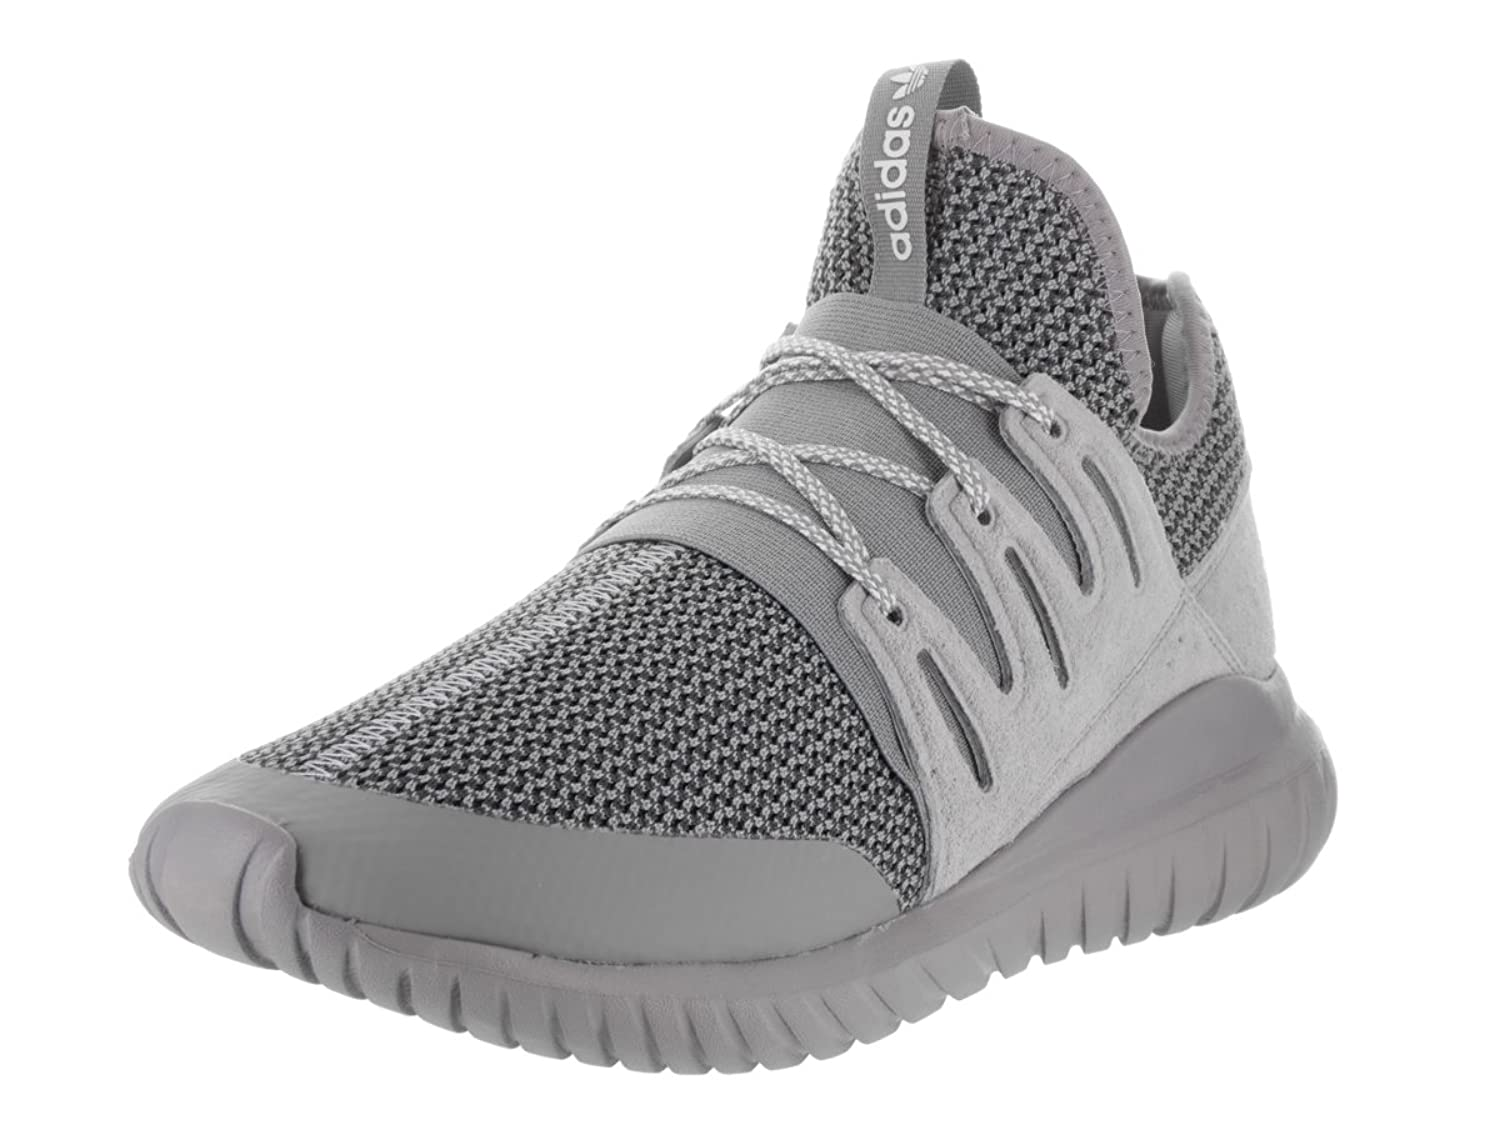 adidas Originals Tubular Radial in Antique Brass/solid Grey BB2394